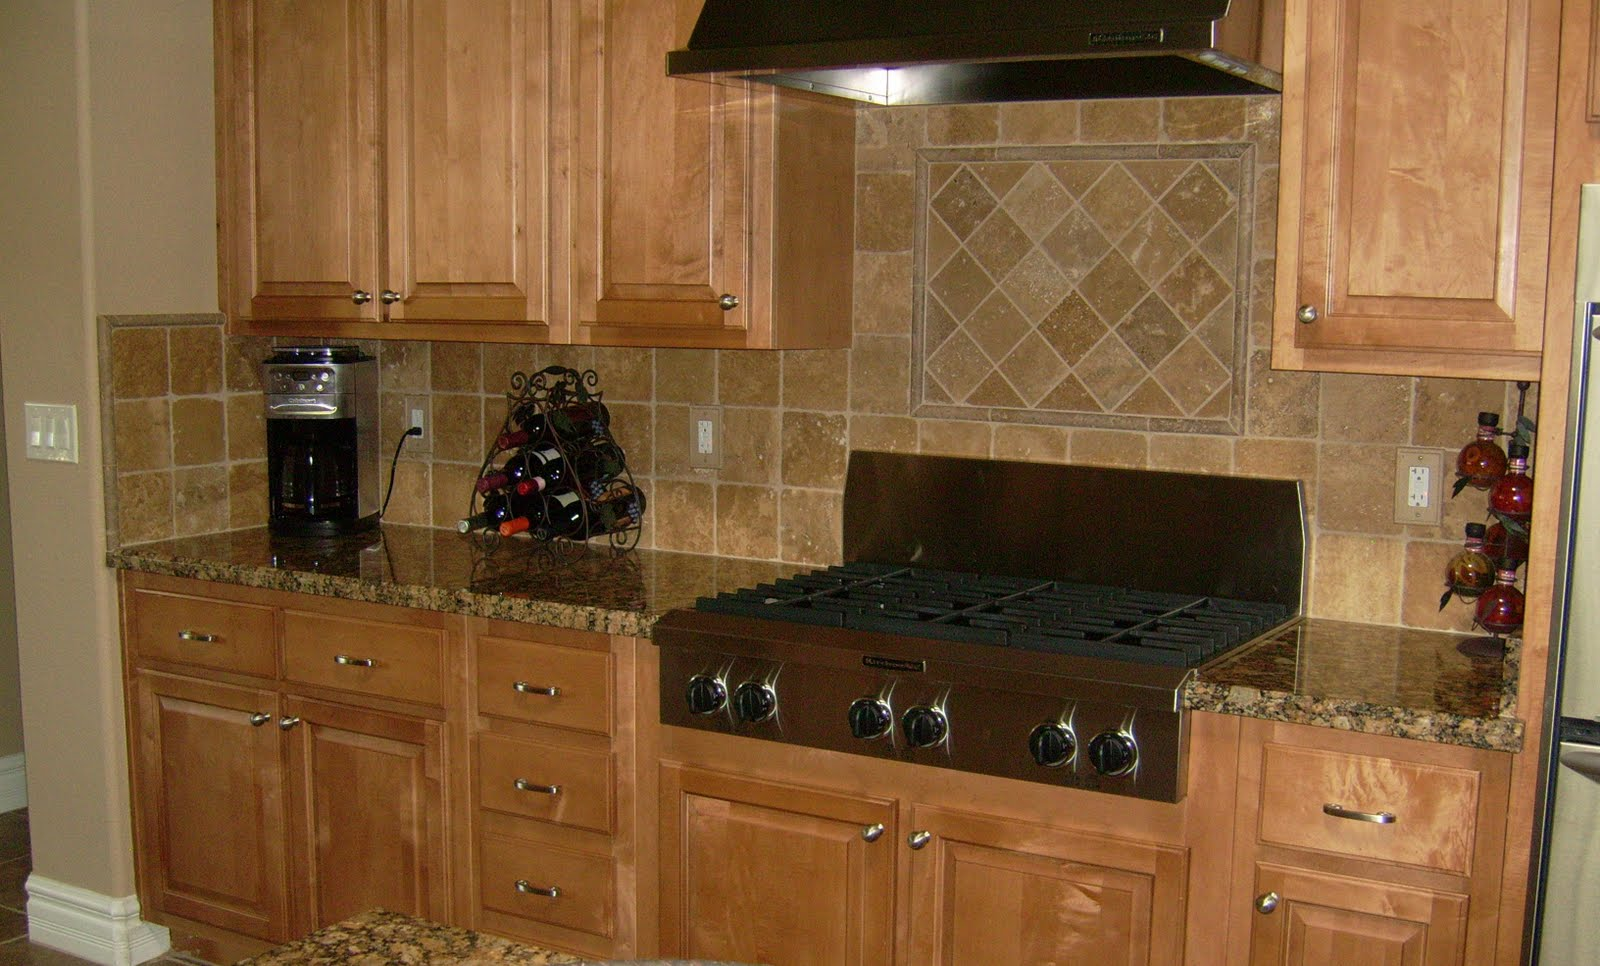 kitchen backsplash ideas 6x6 tumbled stone kitchen backsplash 699